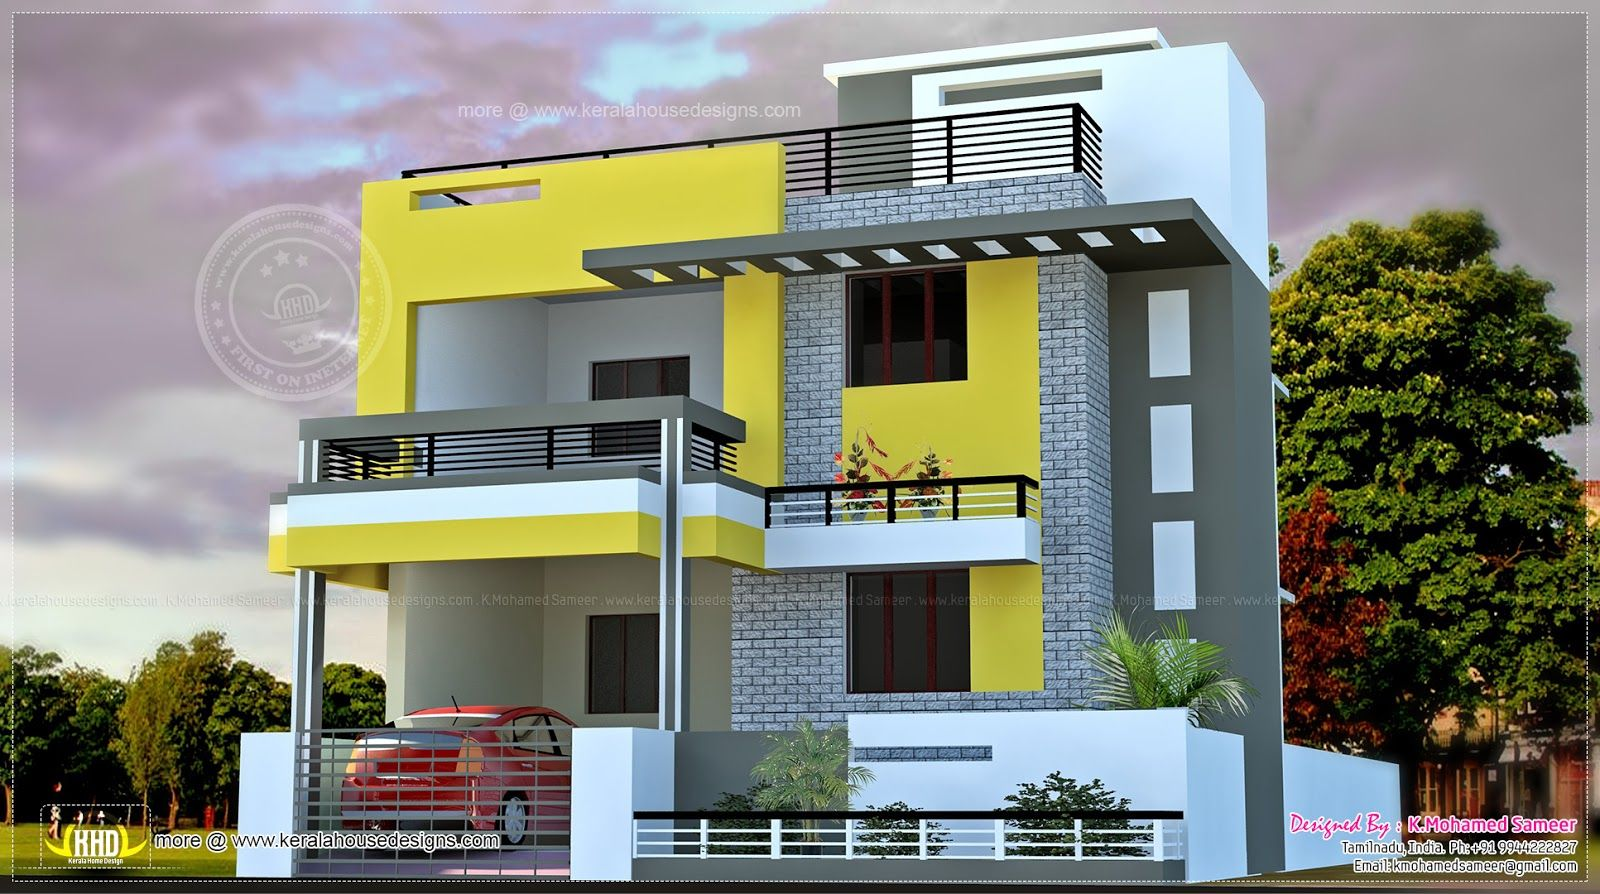 Elevations of residential buildings in indian photo for House structure design in india